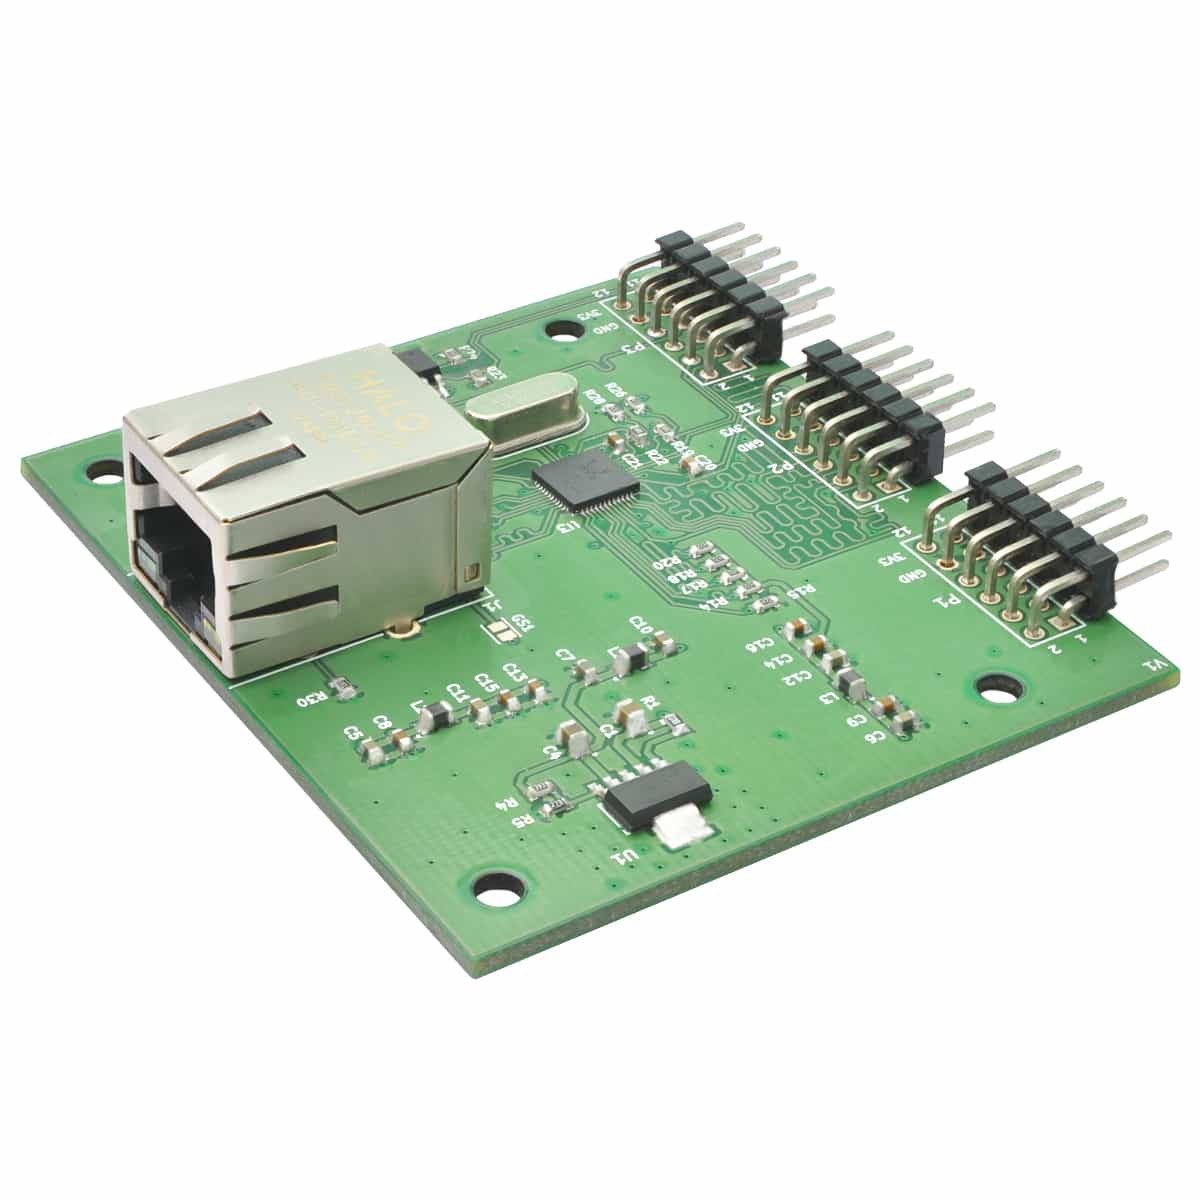 Rtl8211e Gigabit Ethernet Expansion Module Nu Ethexpgb001 Rlx Analog Temperature Controller 8211 Relay Components Sro Electronic Distributor